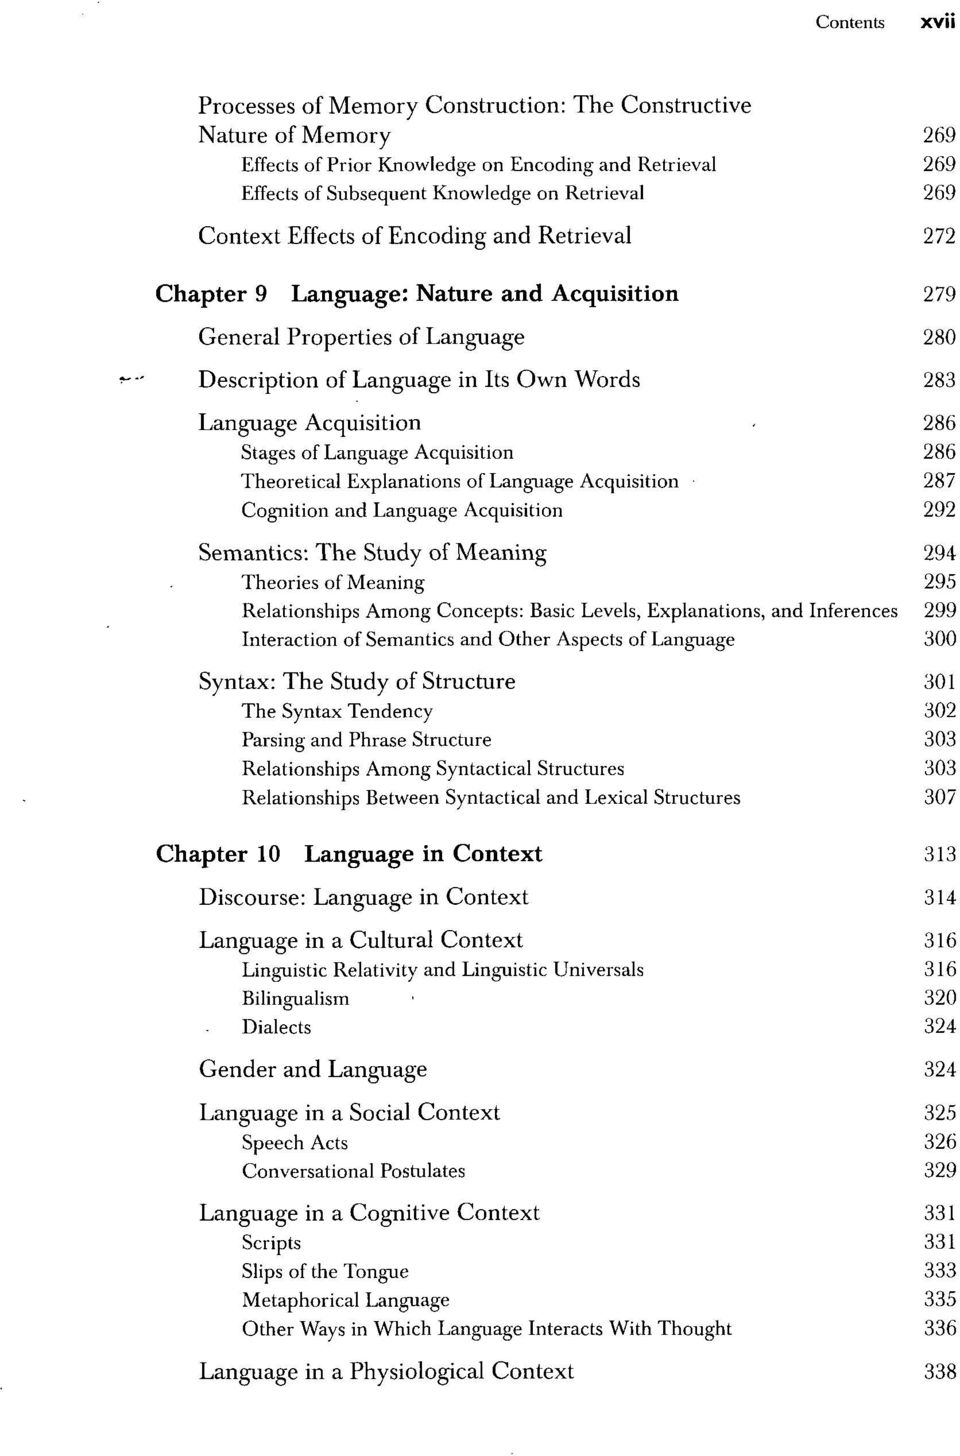 of Language Acquisition 286 Theoretical Explanations of Language Acquisition 287 Cognition and Language Acquisition 292 Semantics: The Study of Meaning 294 Theories of Meaning 295 Relationships Among